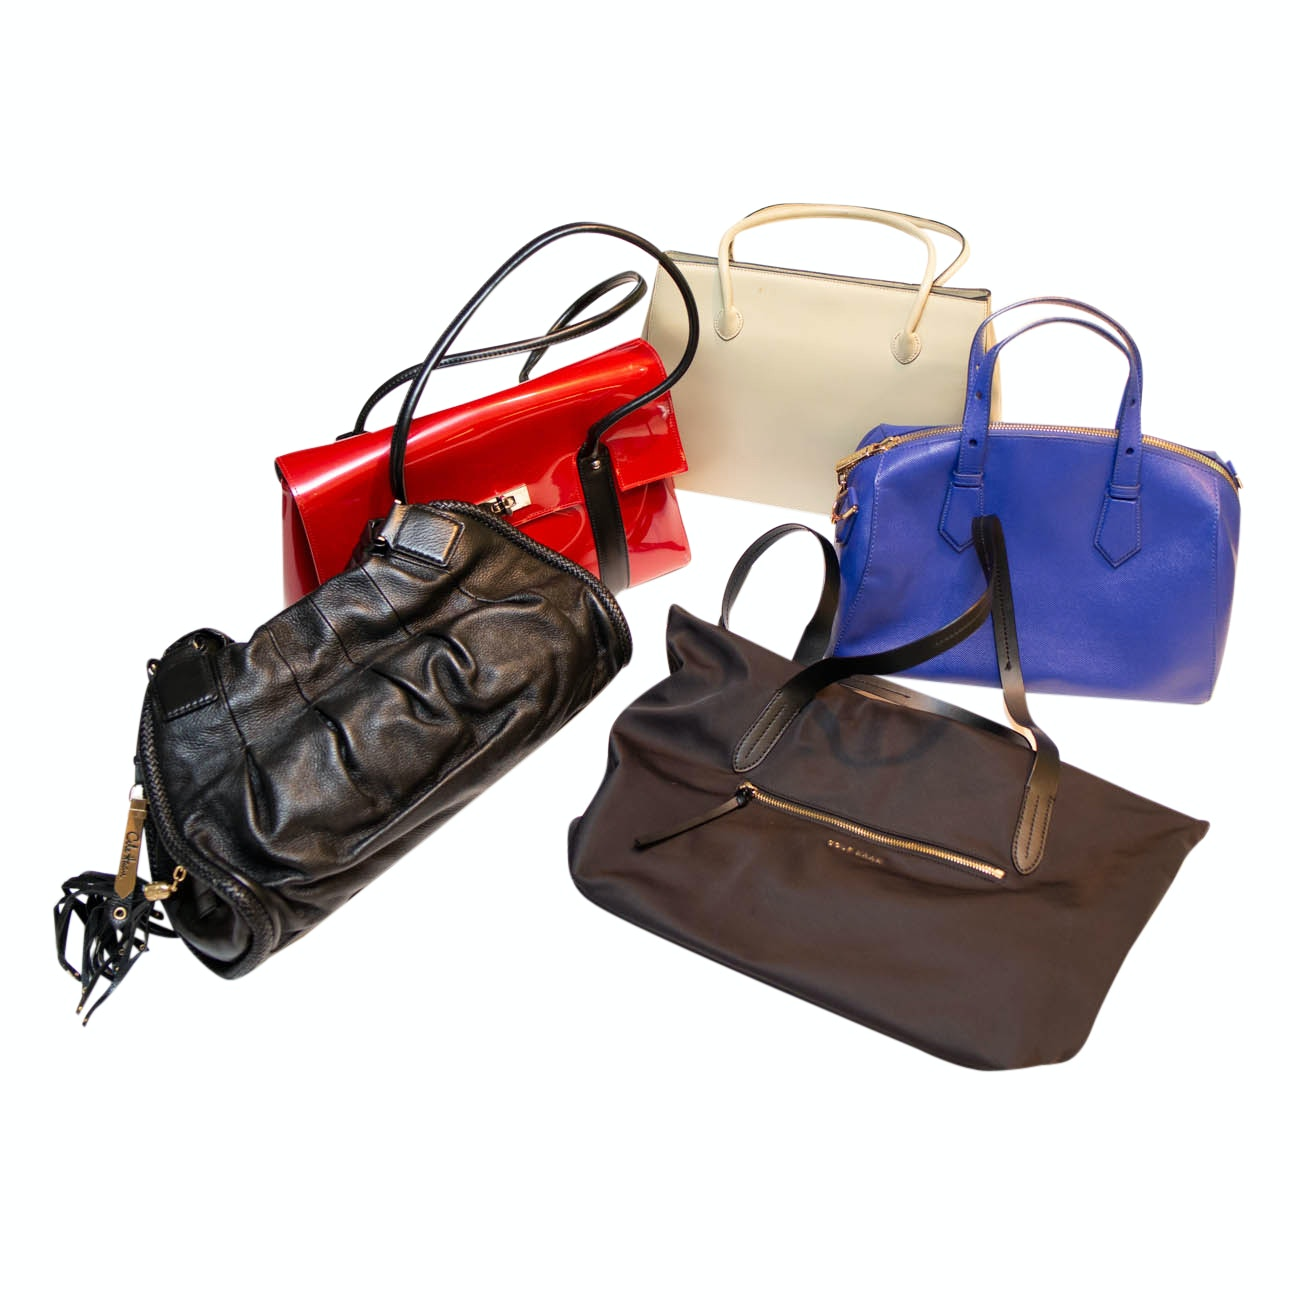 Handbag Collection Including Cole Haan, Beijo, Charles & Keith and Vittadini